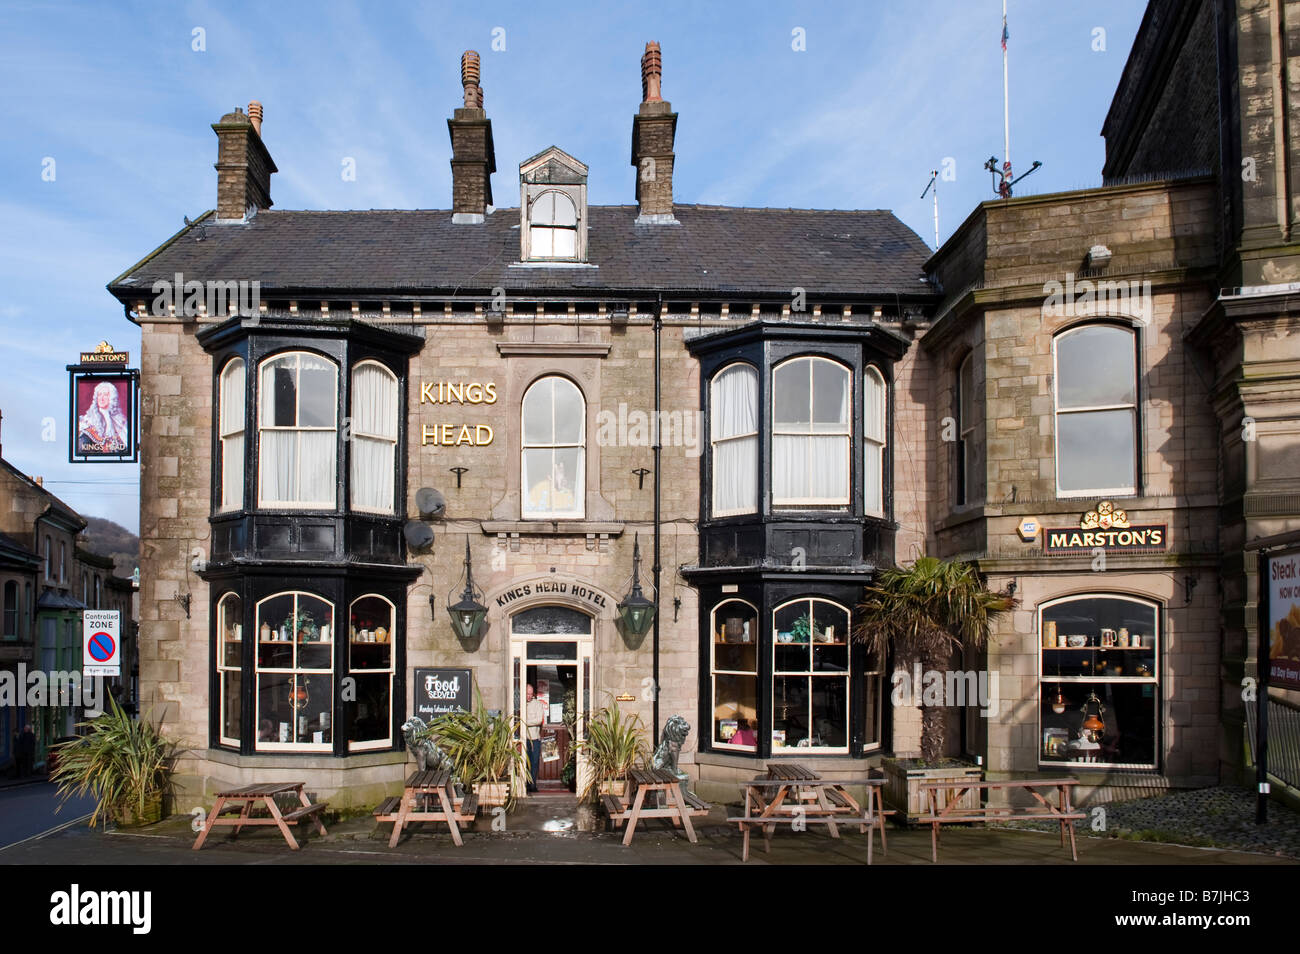 Kings Head Hotel in Buxton, Derbyshire, England - Stock Image